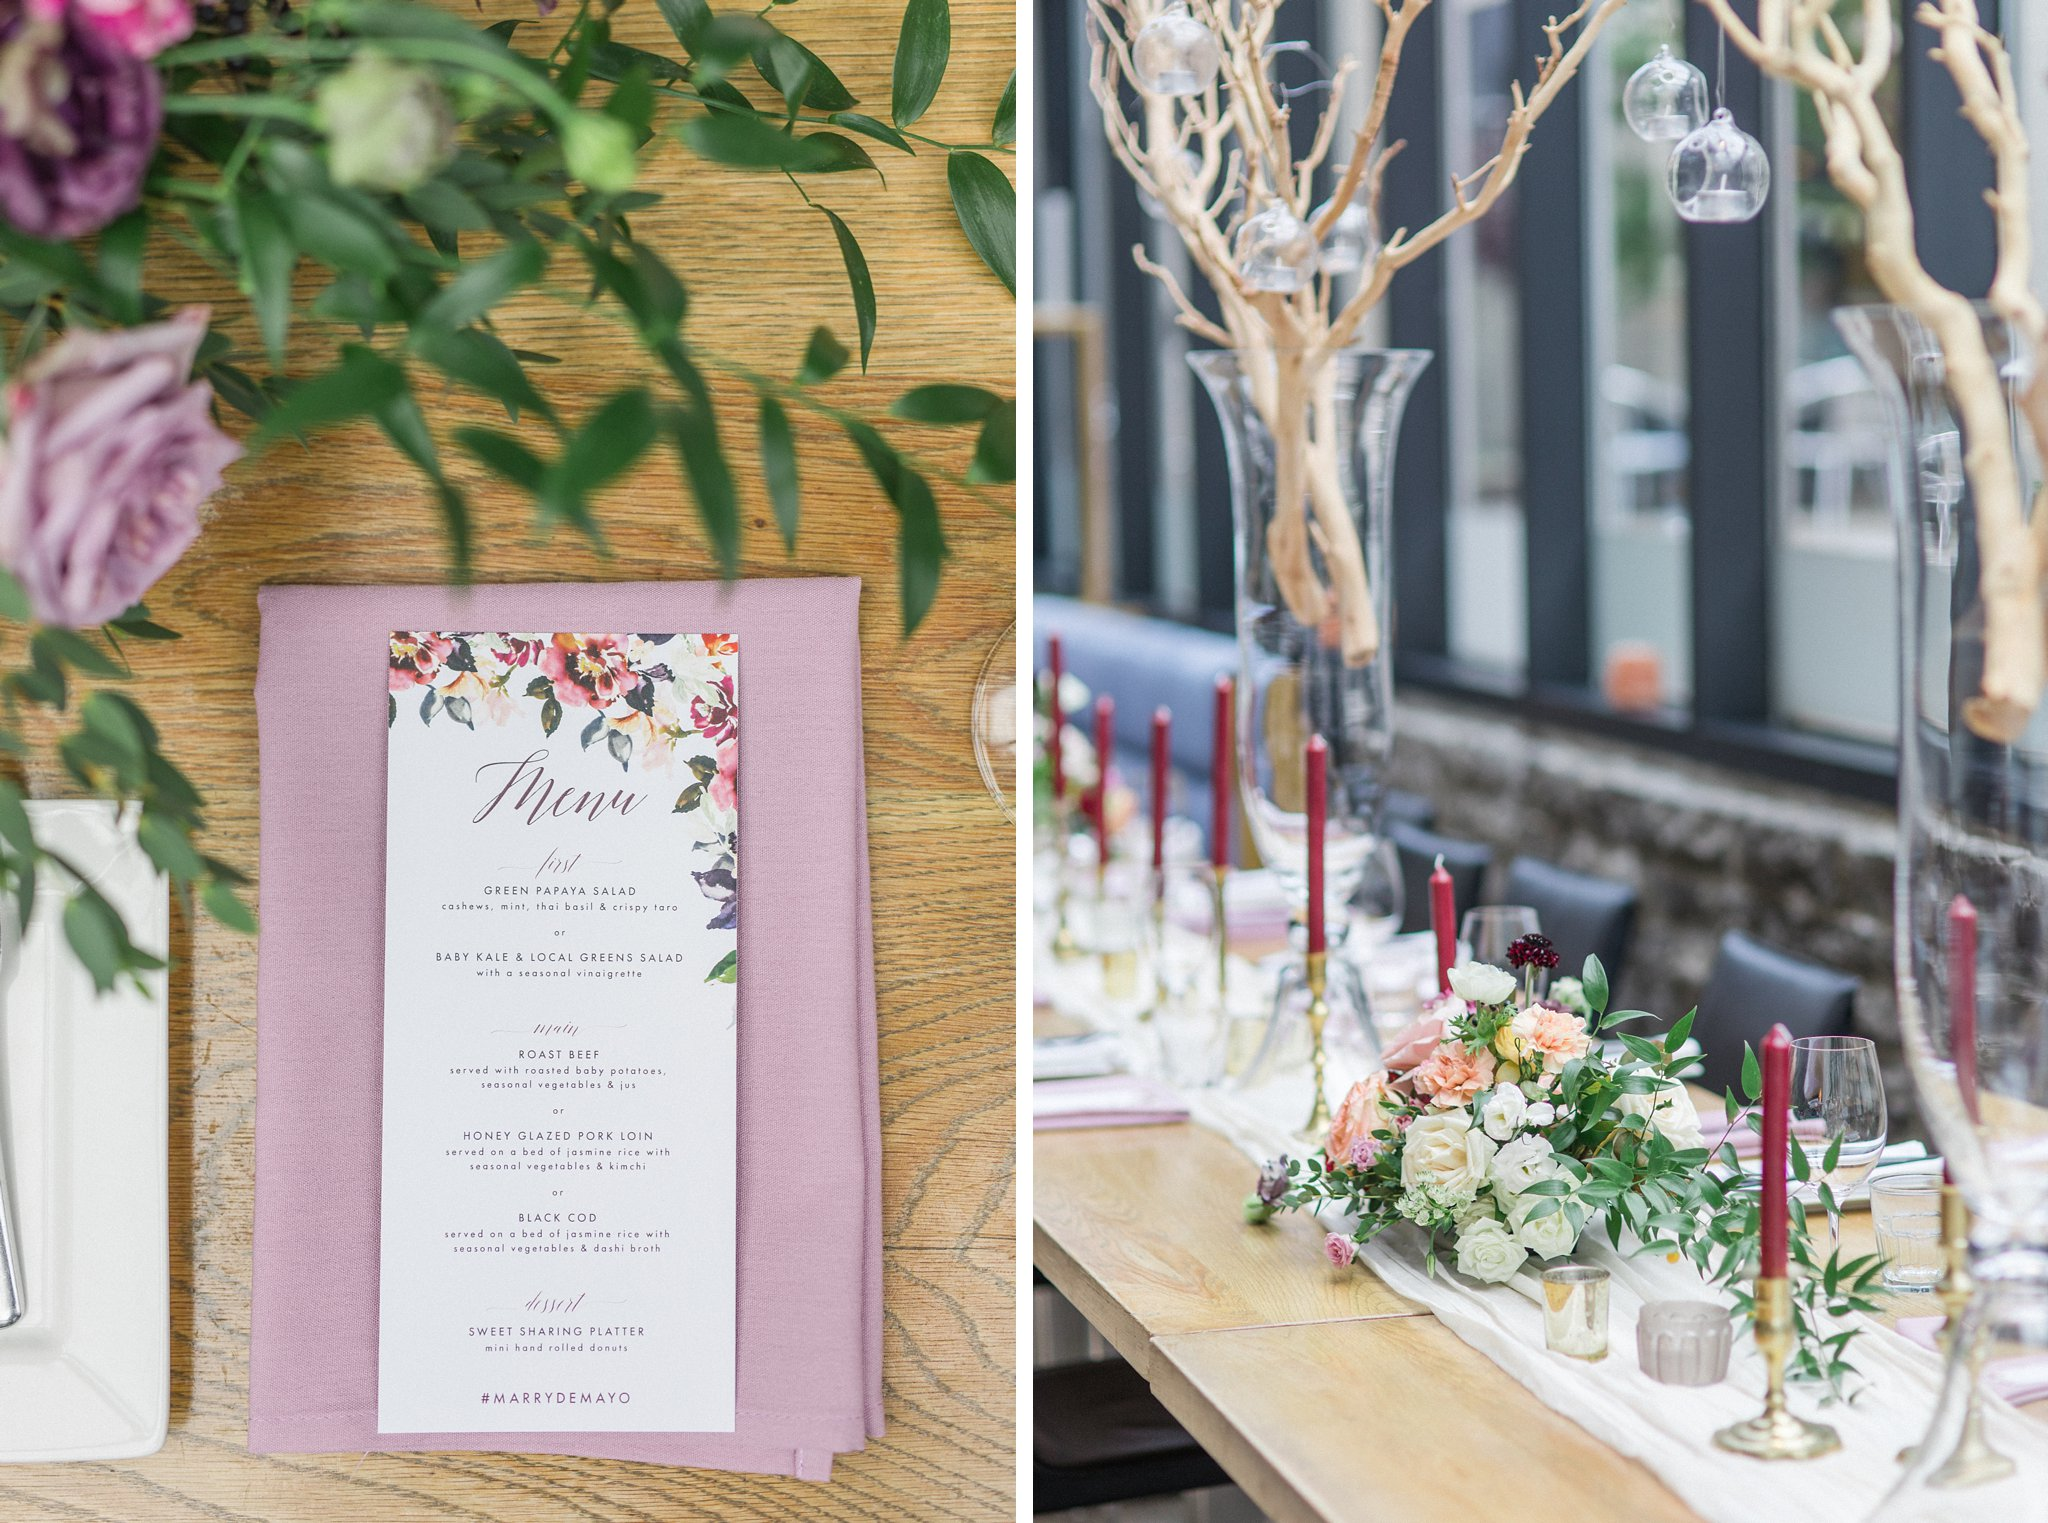 Cranberry candlesticks and custom menu Ottawa restaurant wedding at Sidedoor Restaurant